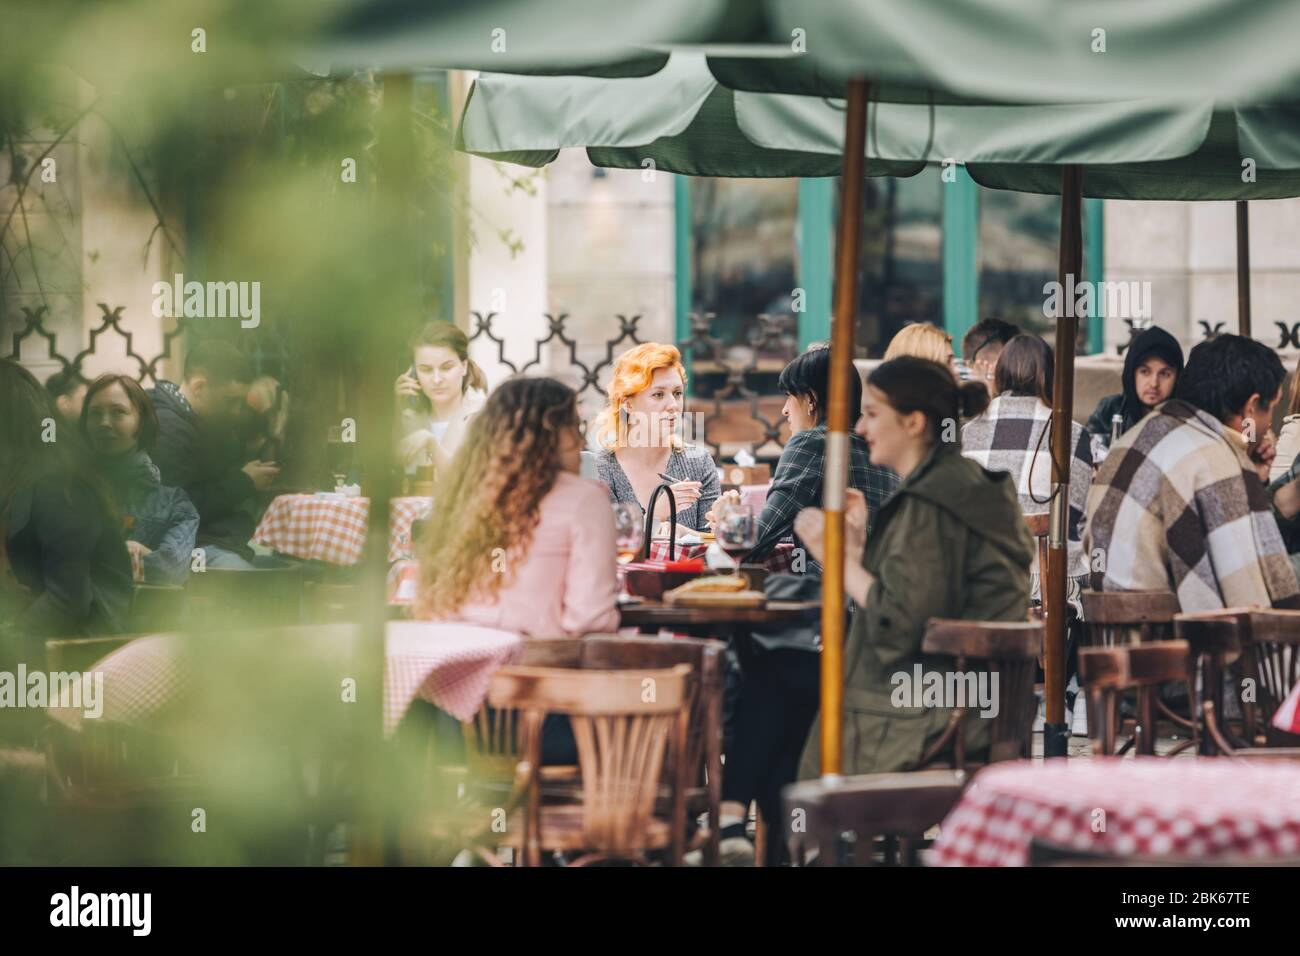 Lviv Ukraine May 11 2019 View Of People Resting At Outdoors Cafe Stock Photo Alamy